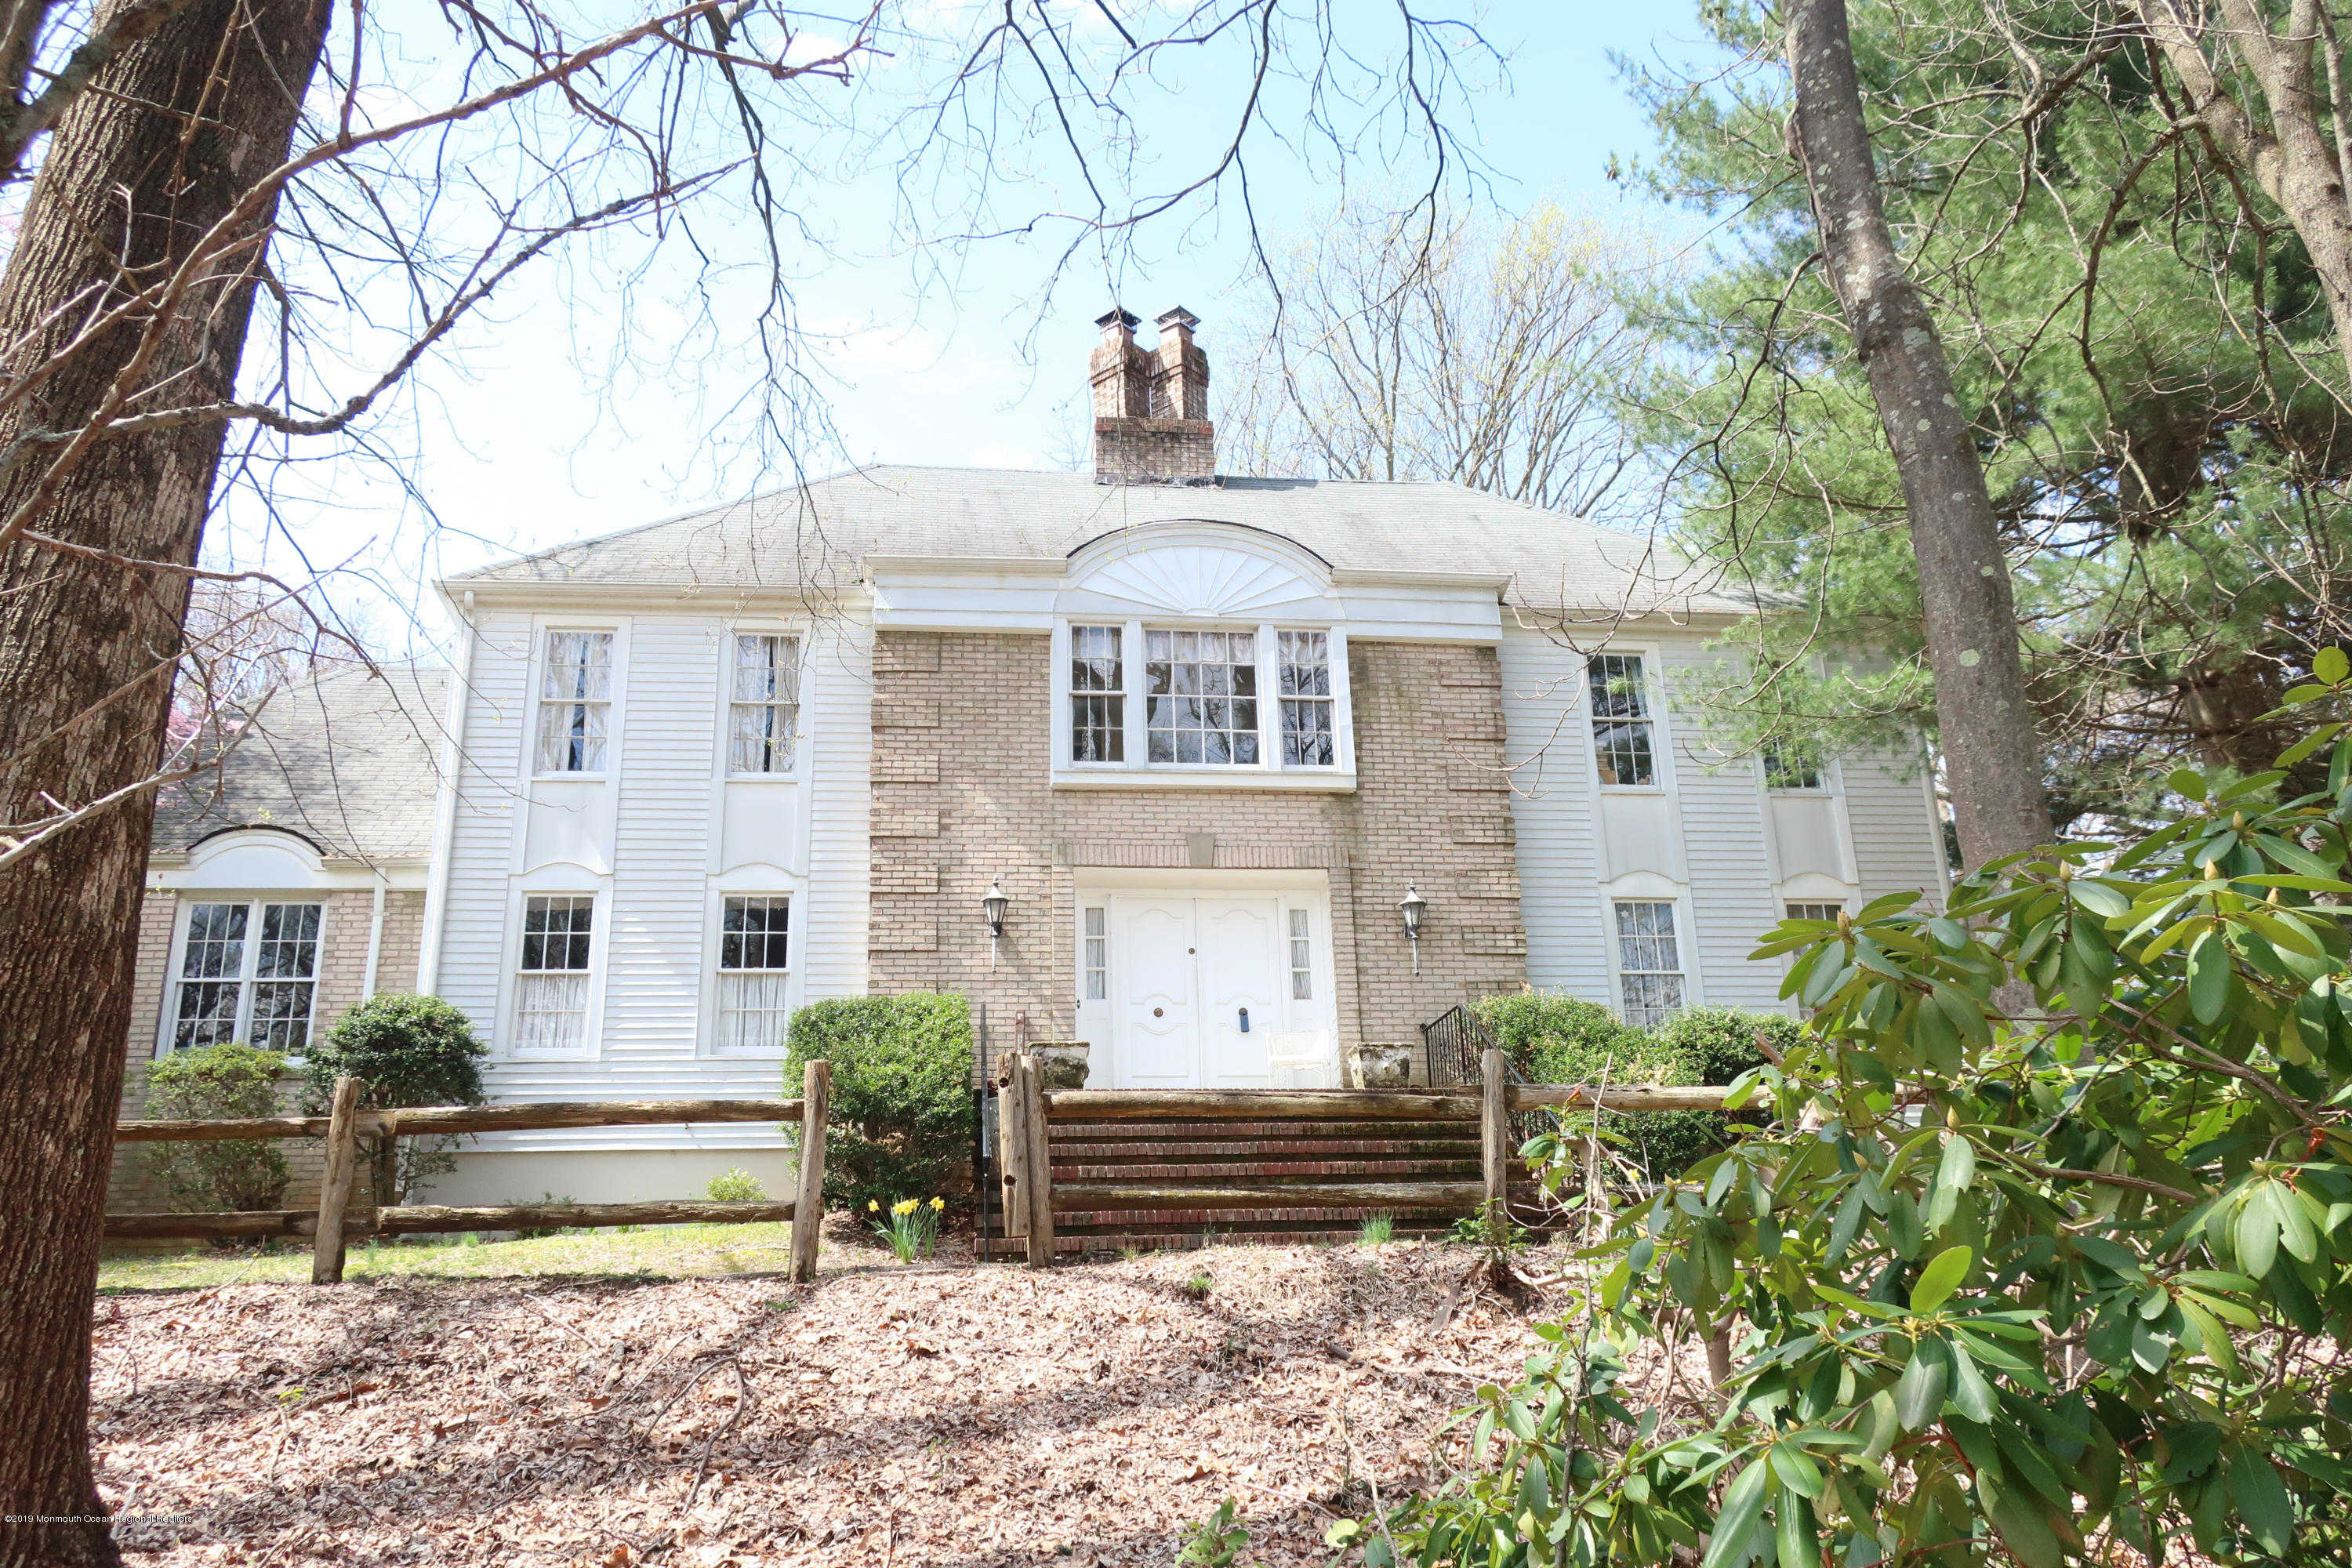 2 Jockey Hollow Court, Holmdel, NJ 07733 has an Open House on  Sunday, April 7, 2019 12:04 PM to 2:00 PM